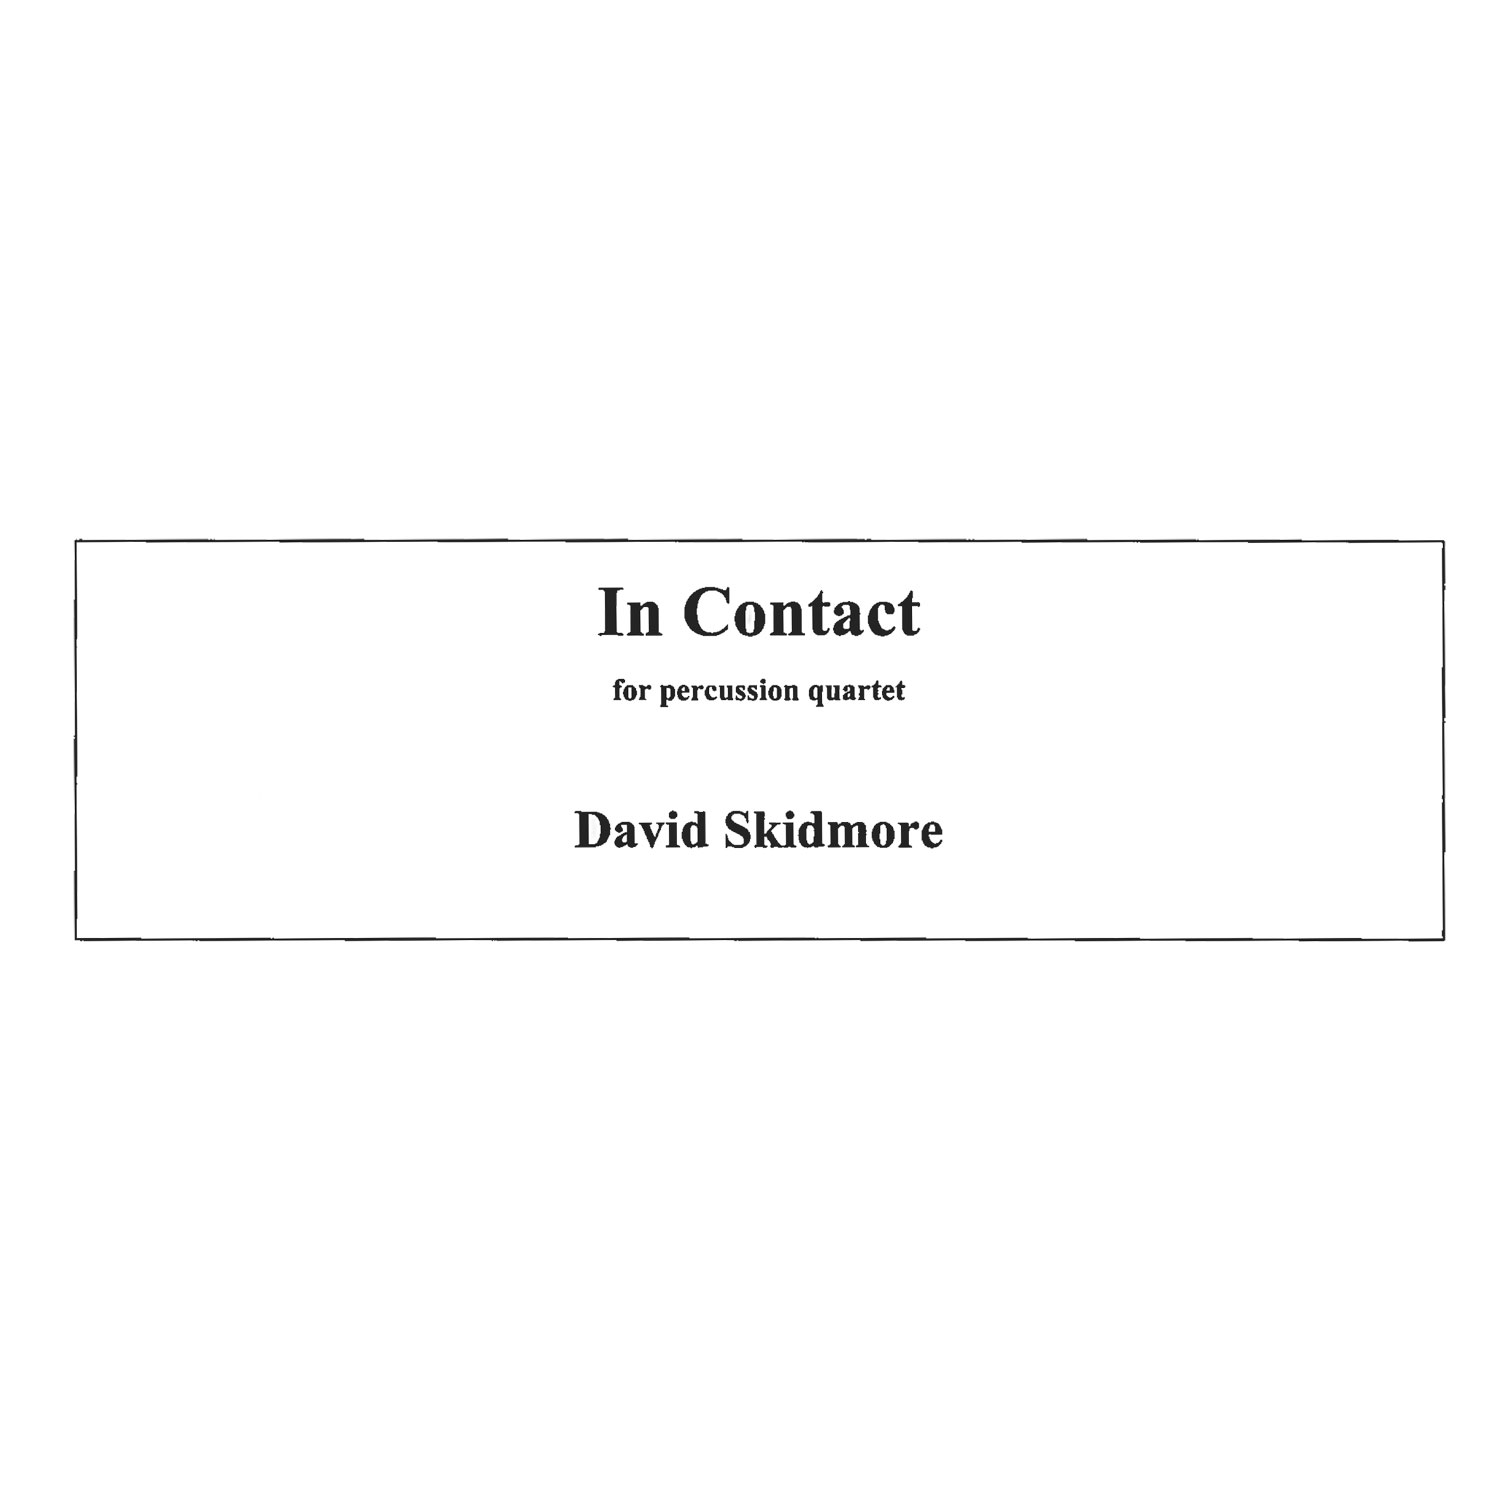 In Contact by David Skidmore